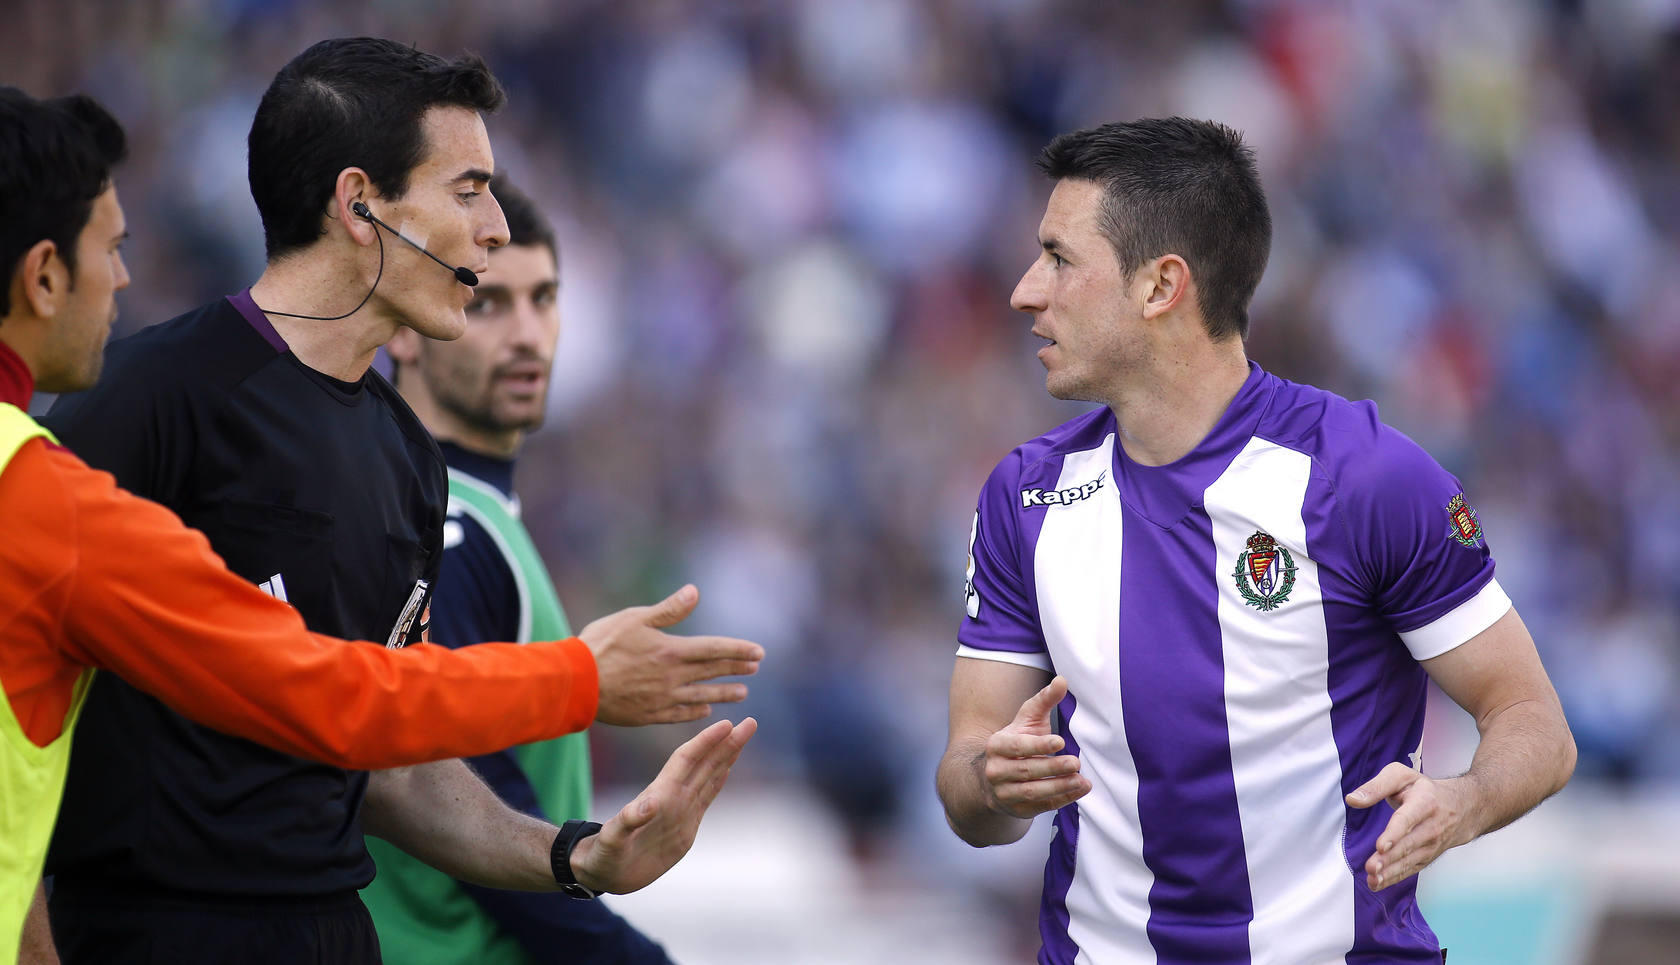 Real Valladolid 2 -1 Getafe